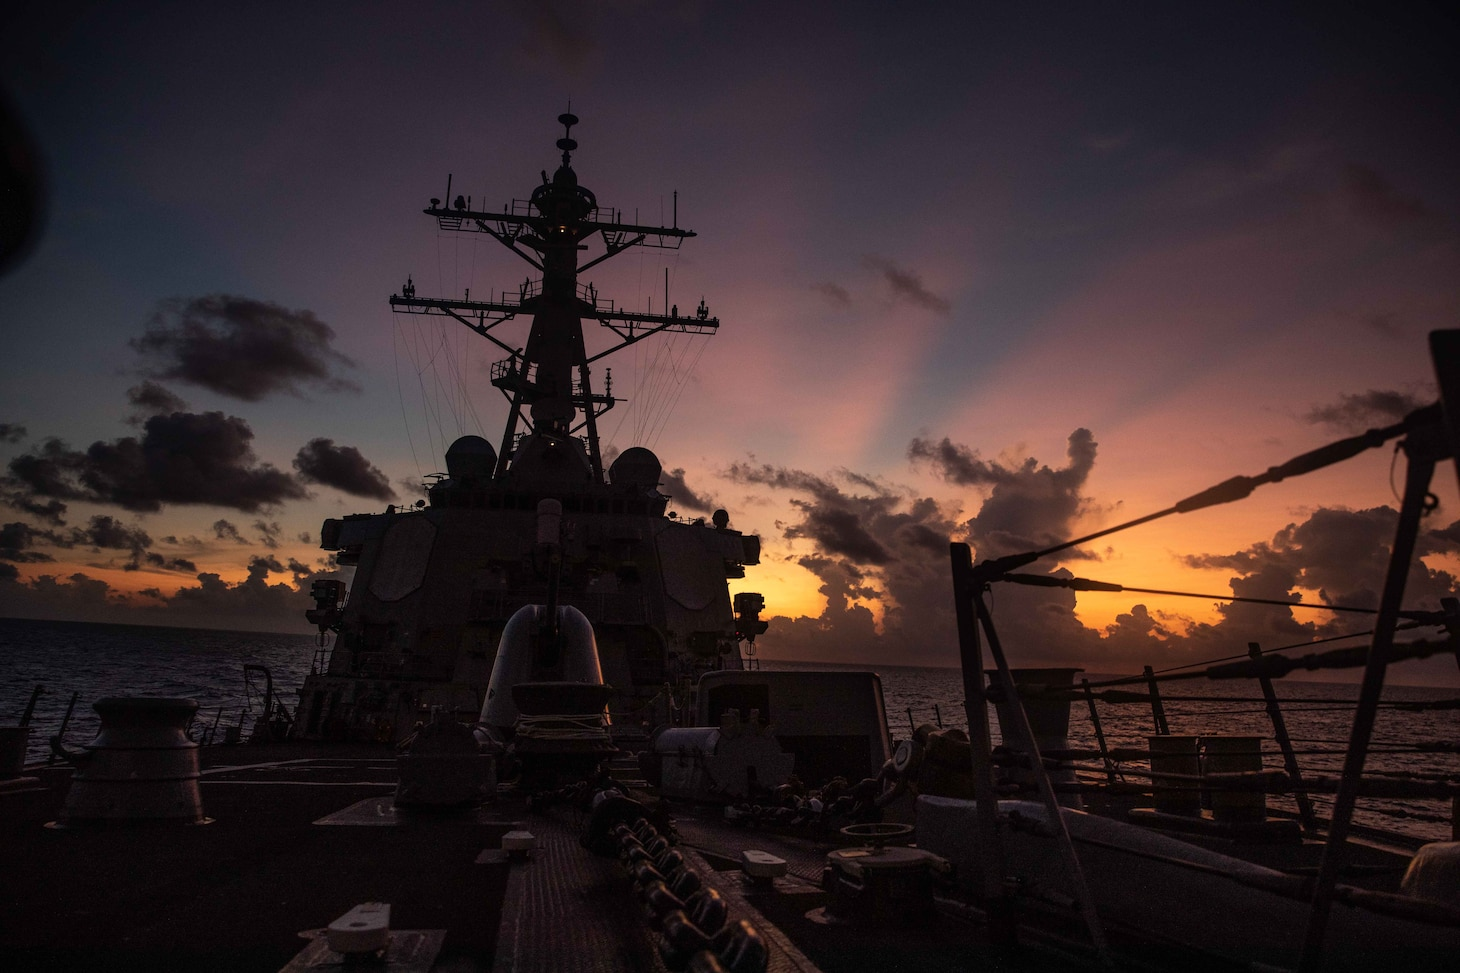 The Arleigh Burke-class guided-missile destroyer USS Curtis Wilbur (DDG 54) conducts routine operations in the South China Sea. Curtis Wilbur is assigned to Commander, Task Force 71/Destroyer Squadron (DESRON) 15, the Navy's largest forward DESRON and the U.S. 7th Fleet's principal surface force.